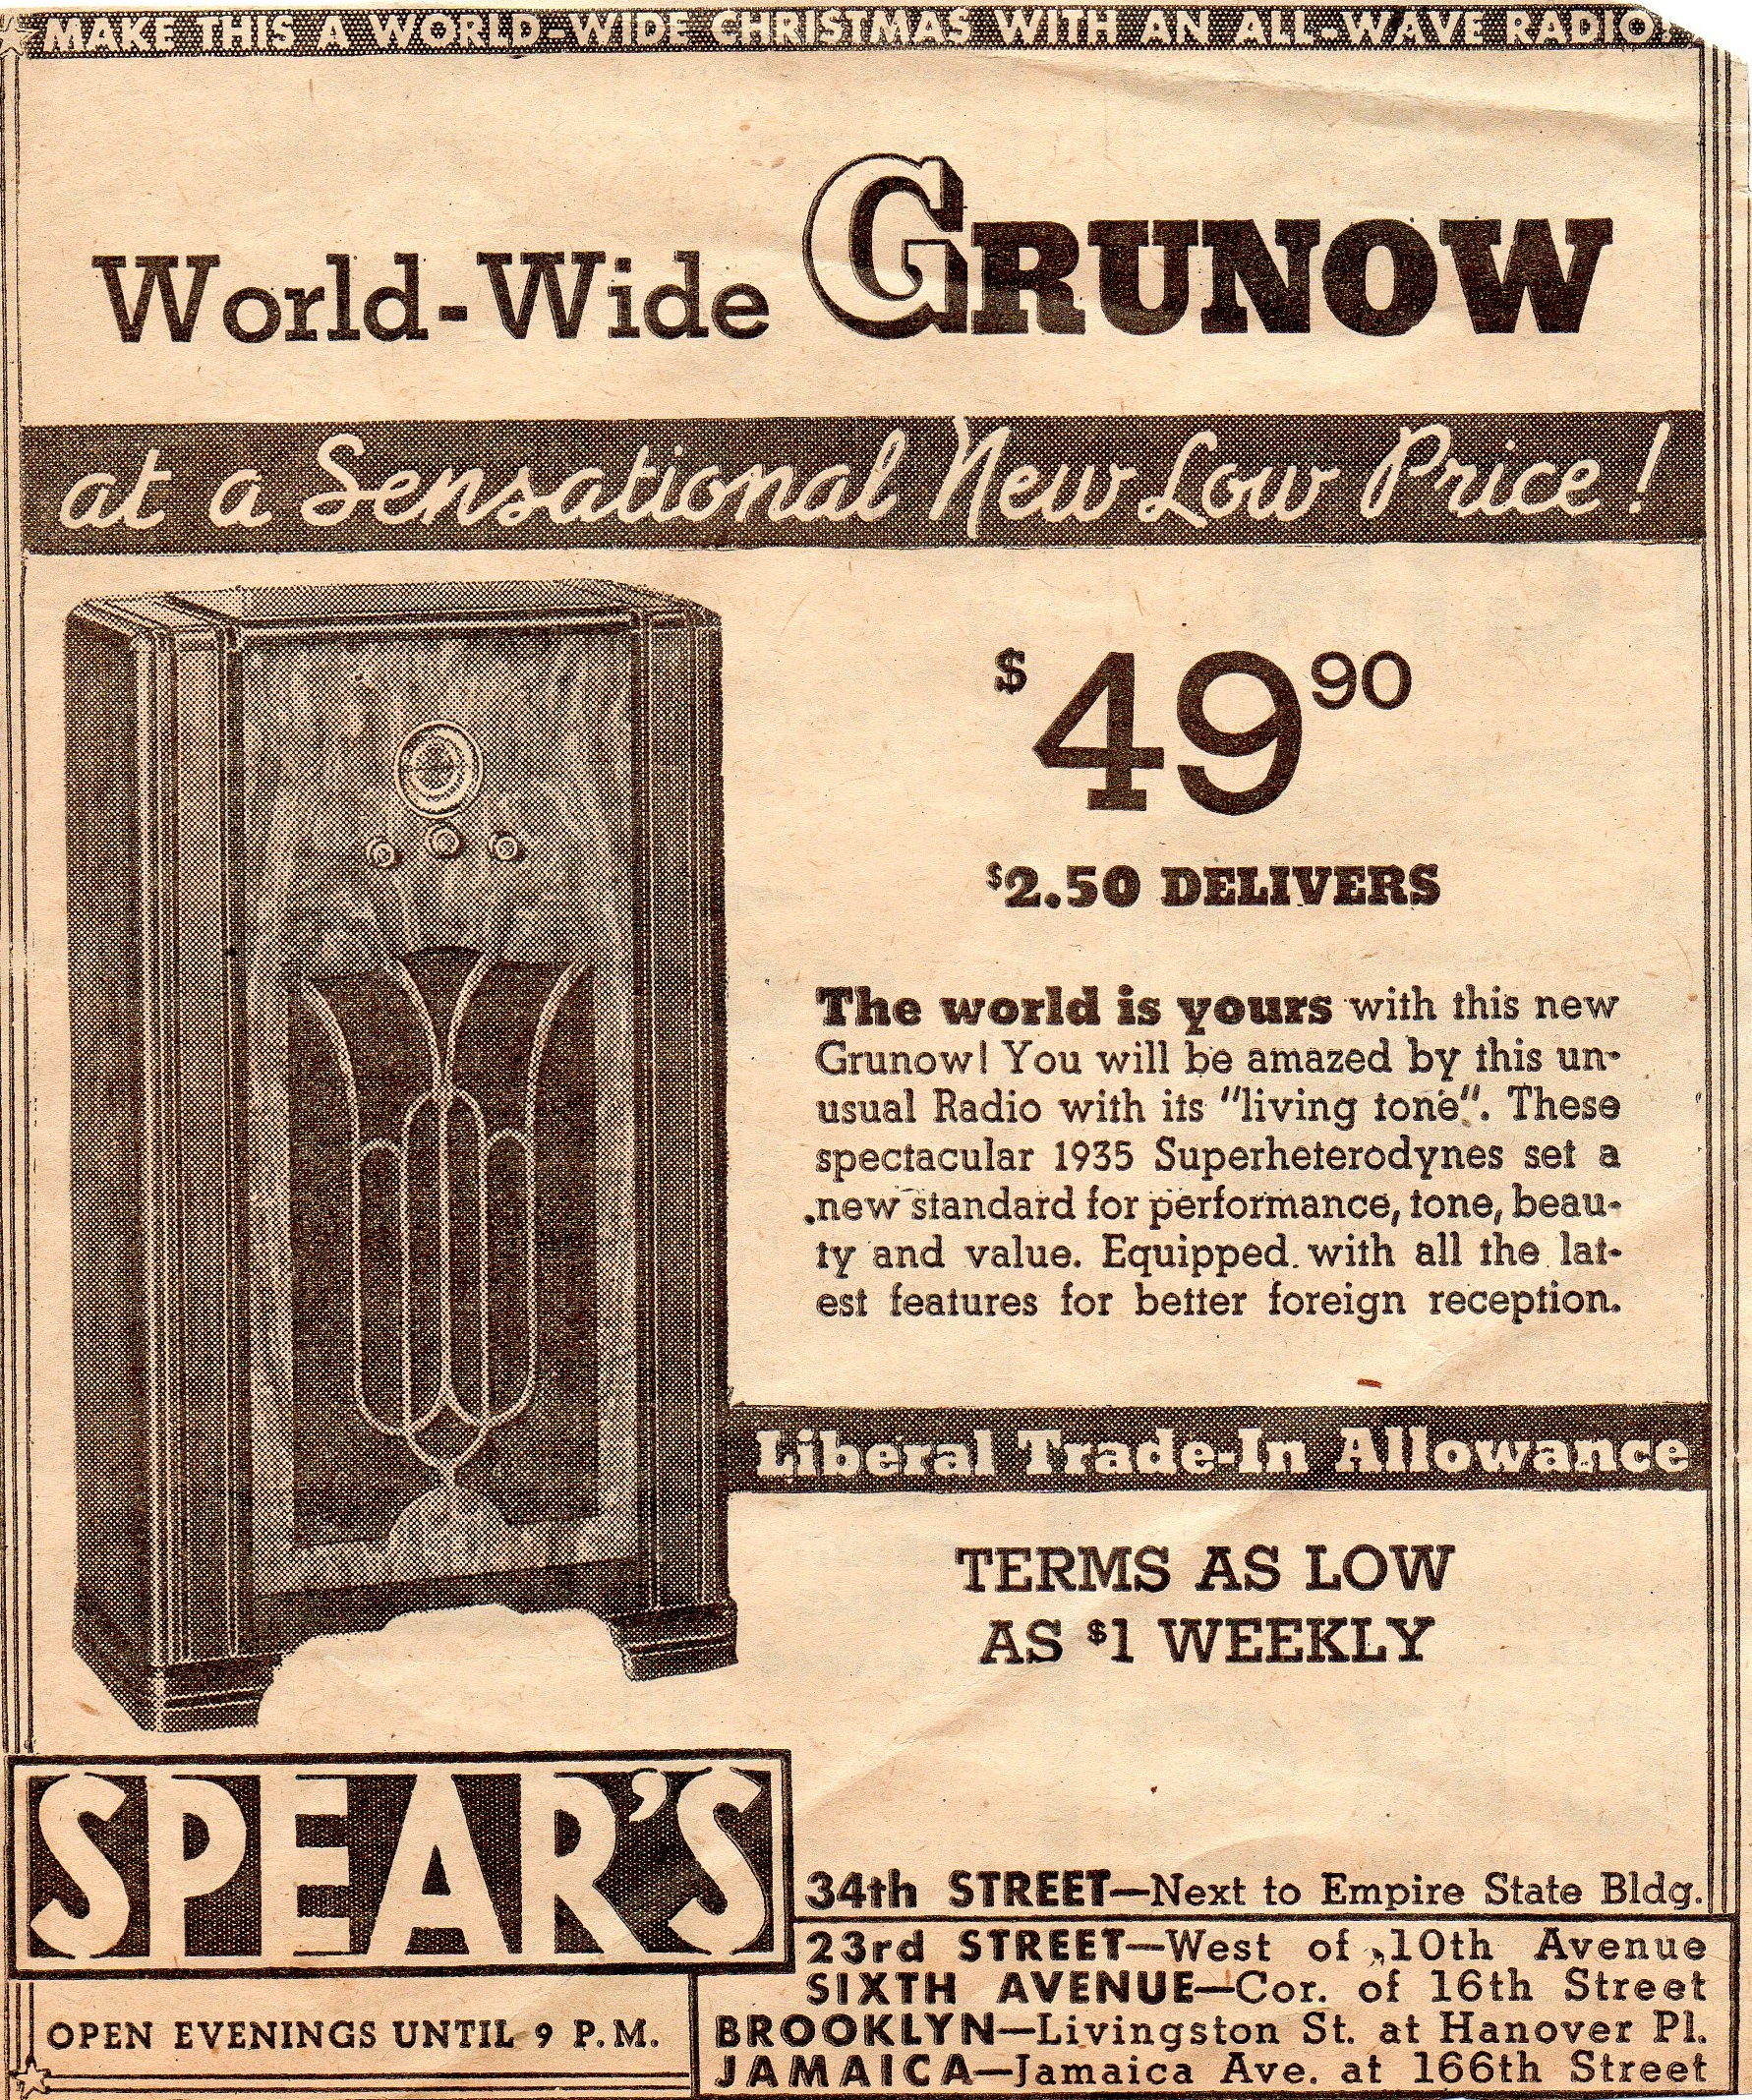 munications Nostalgia likewise File Grebe CR 12 Radio  1920s as well 40 Vintage Christmas Advertisements likewise 2009 11 01 archive likewise File early 1920s radio and horn speaker. on old radios from 1920s